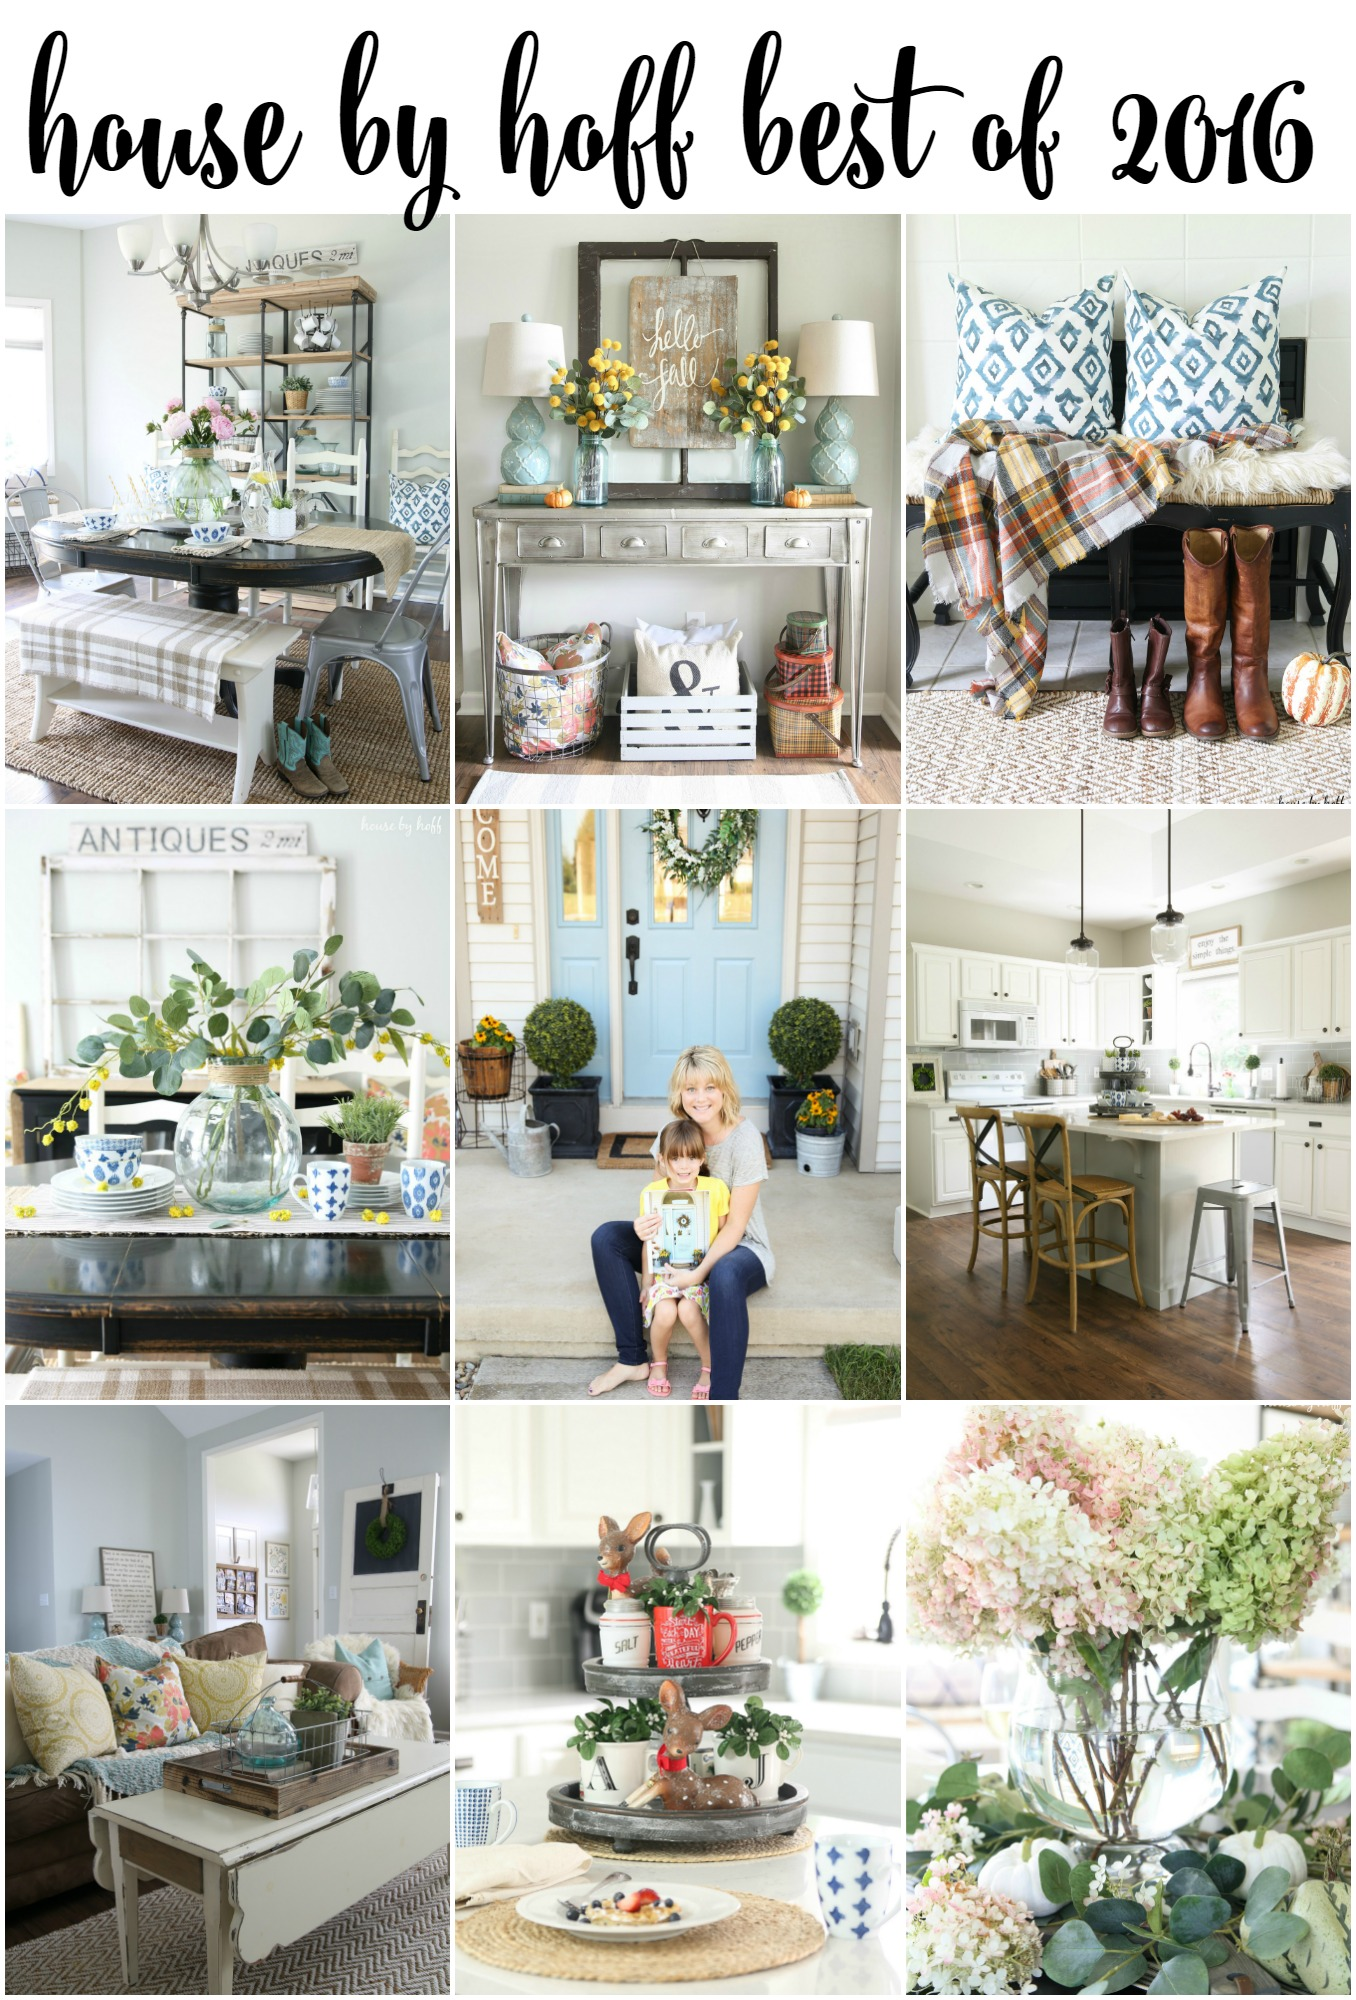 House by Hoff Top 10 Posts of 2016